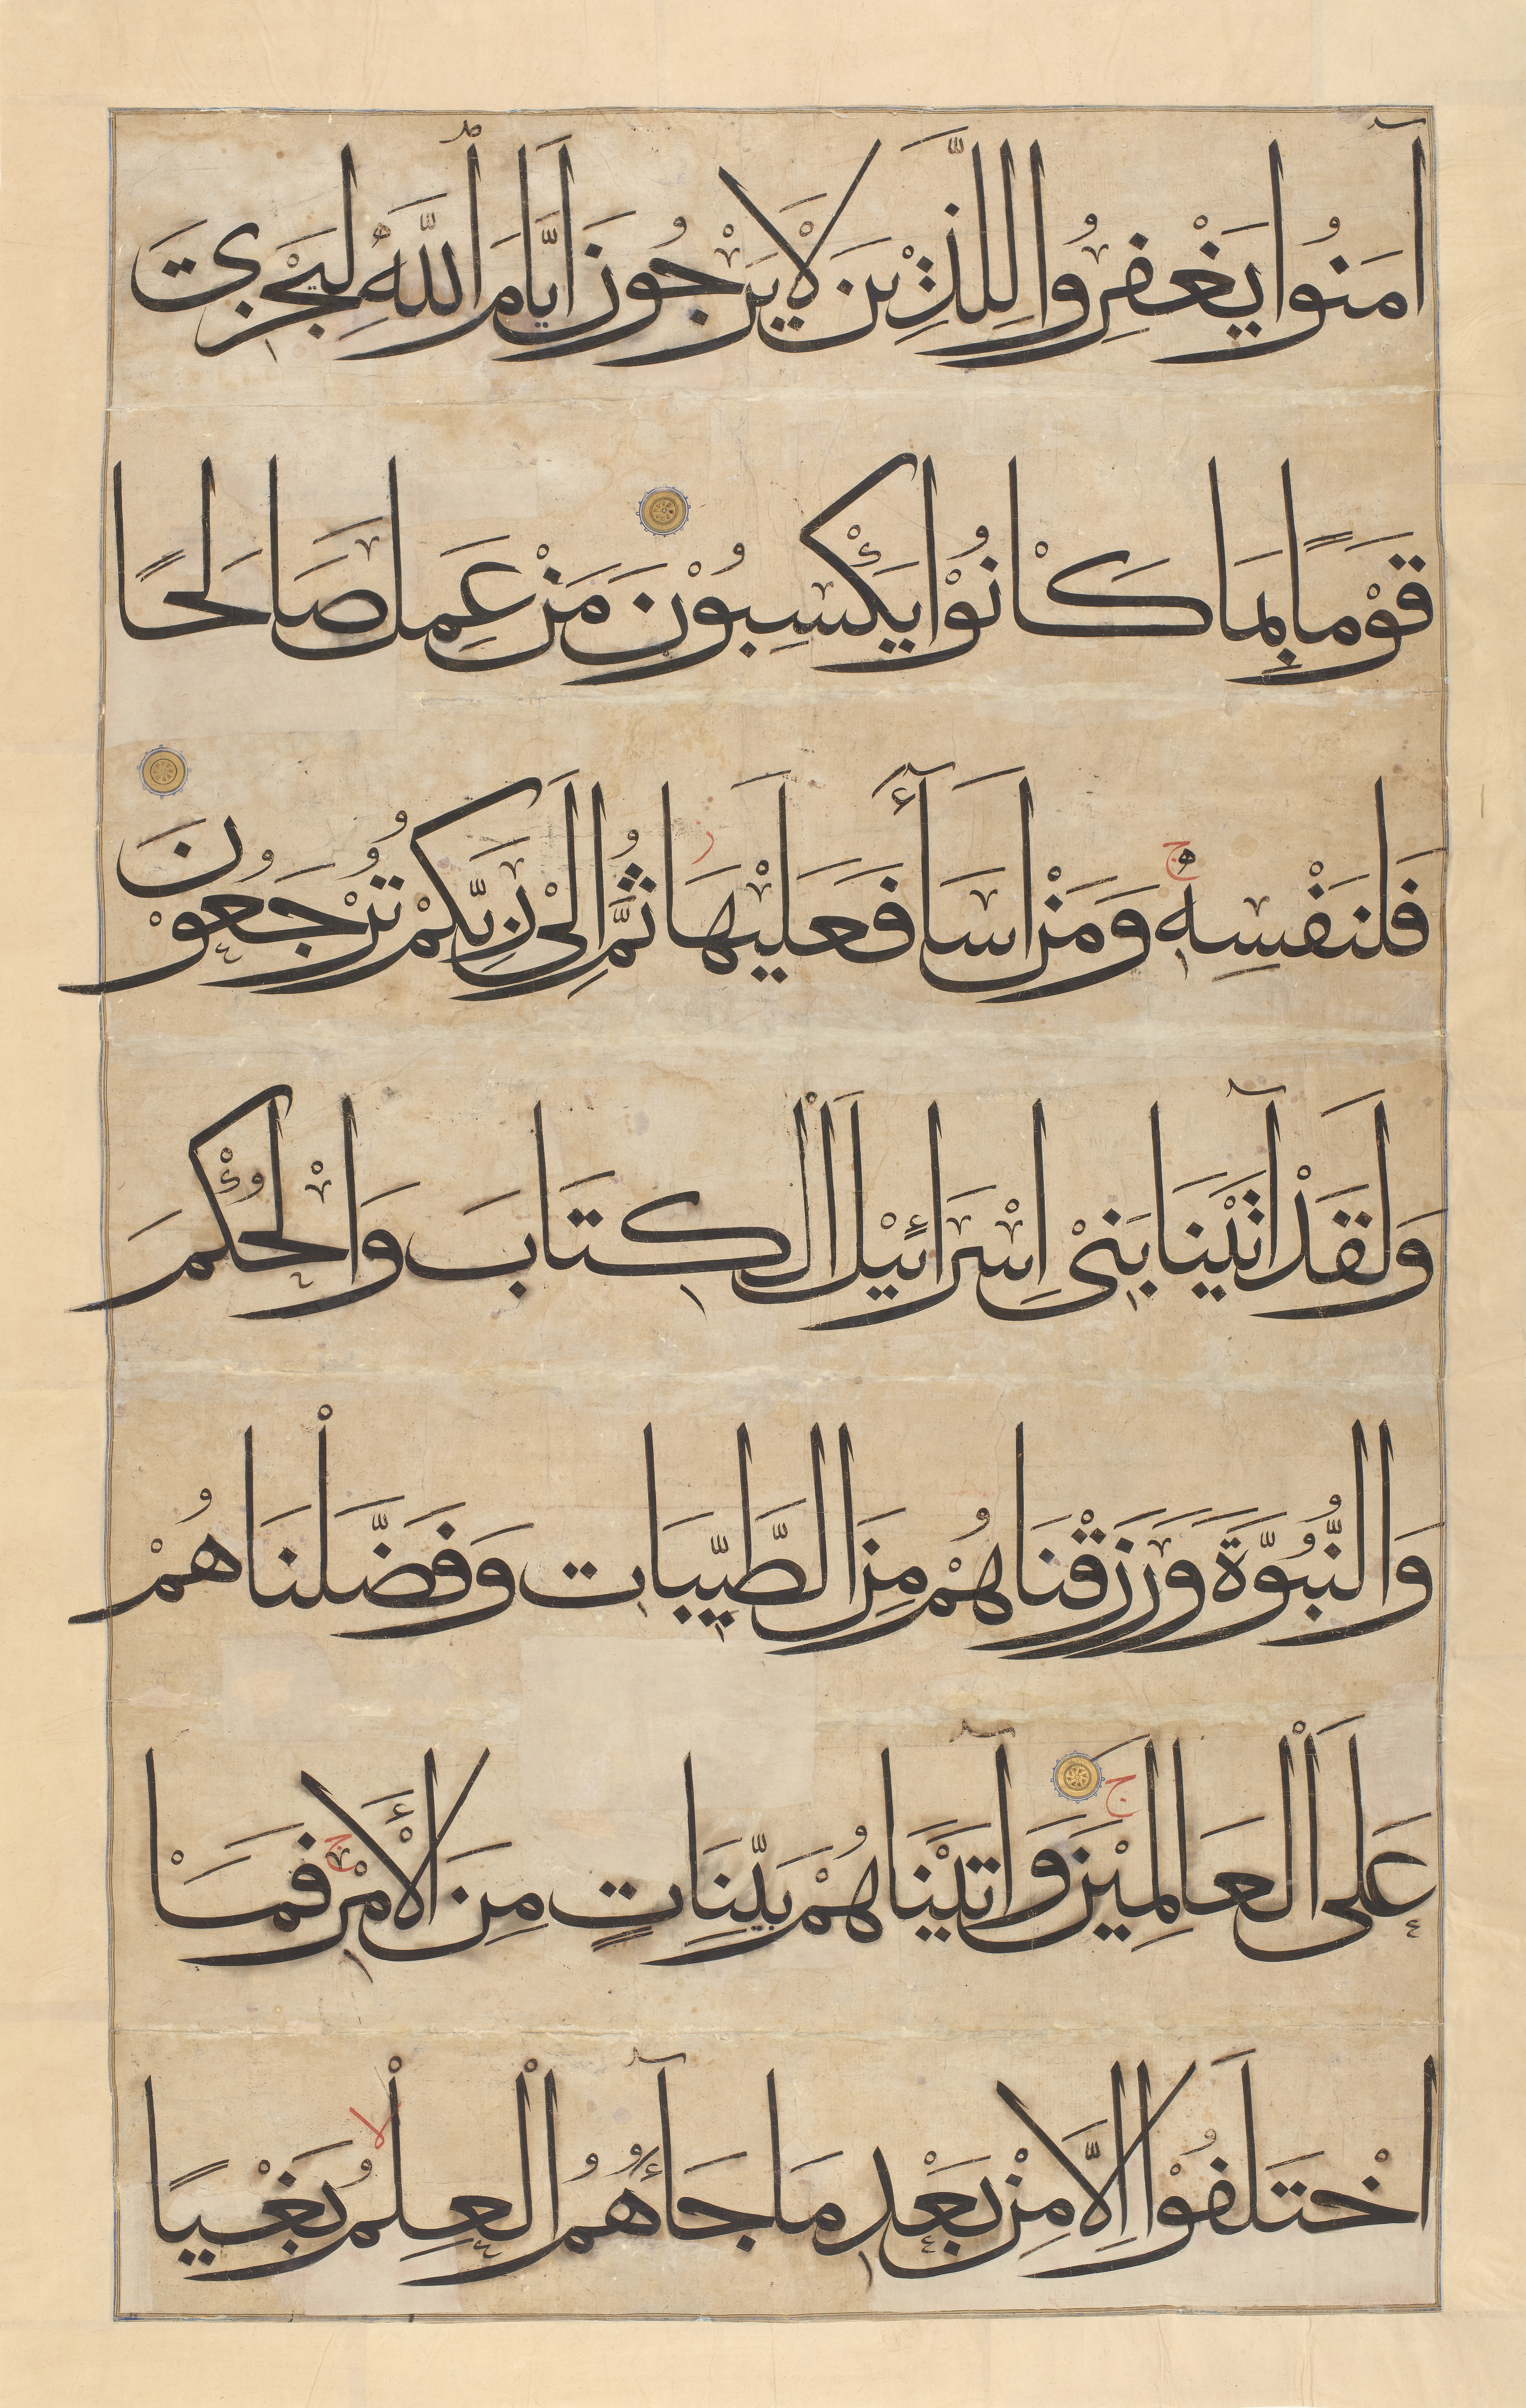 A page from the world's largest Qur'an, circa 1400, currently on display as part of the Art of the Qur'an exhibition.